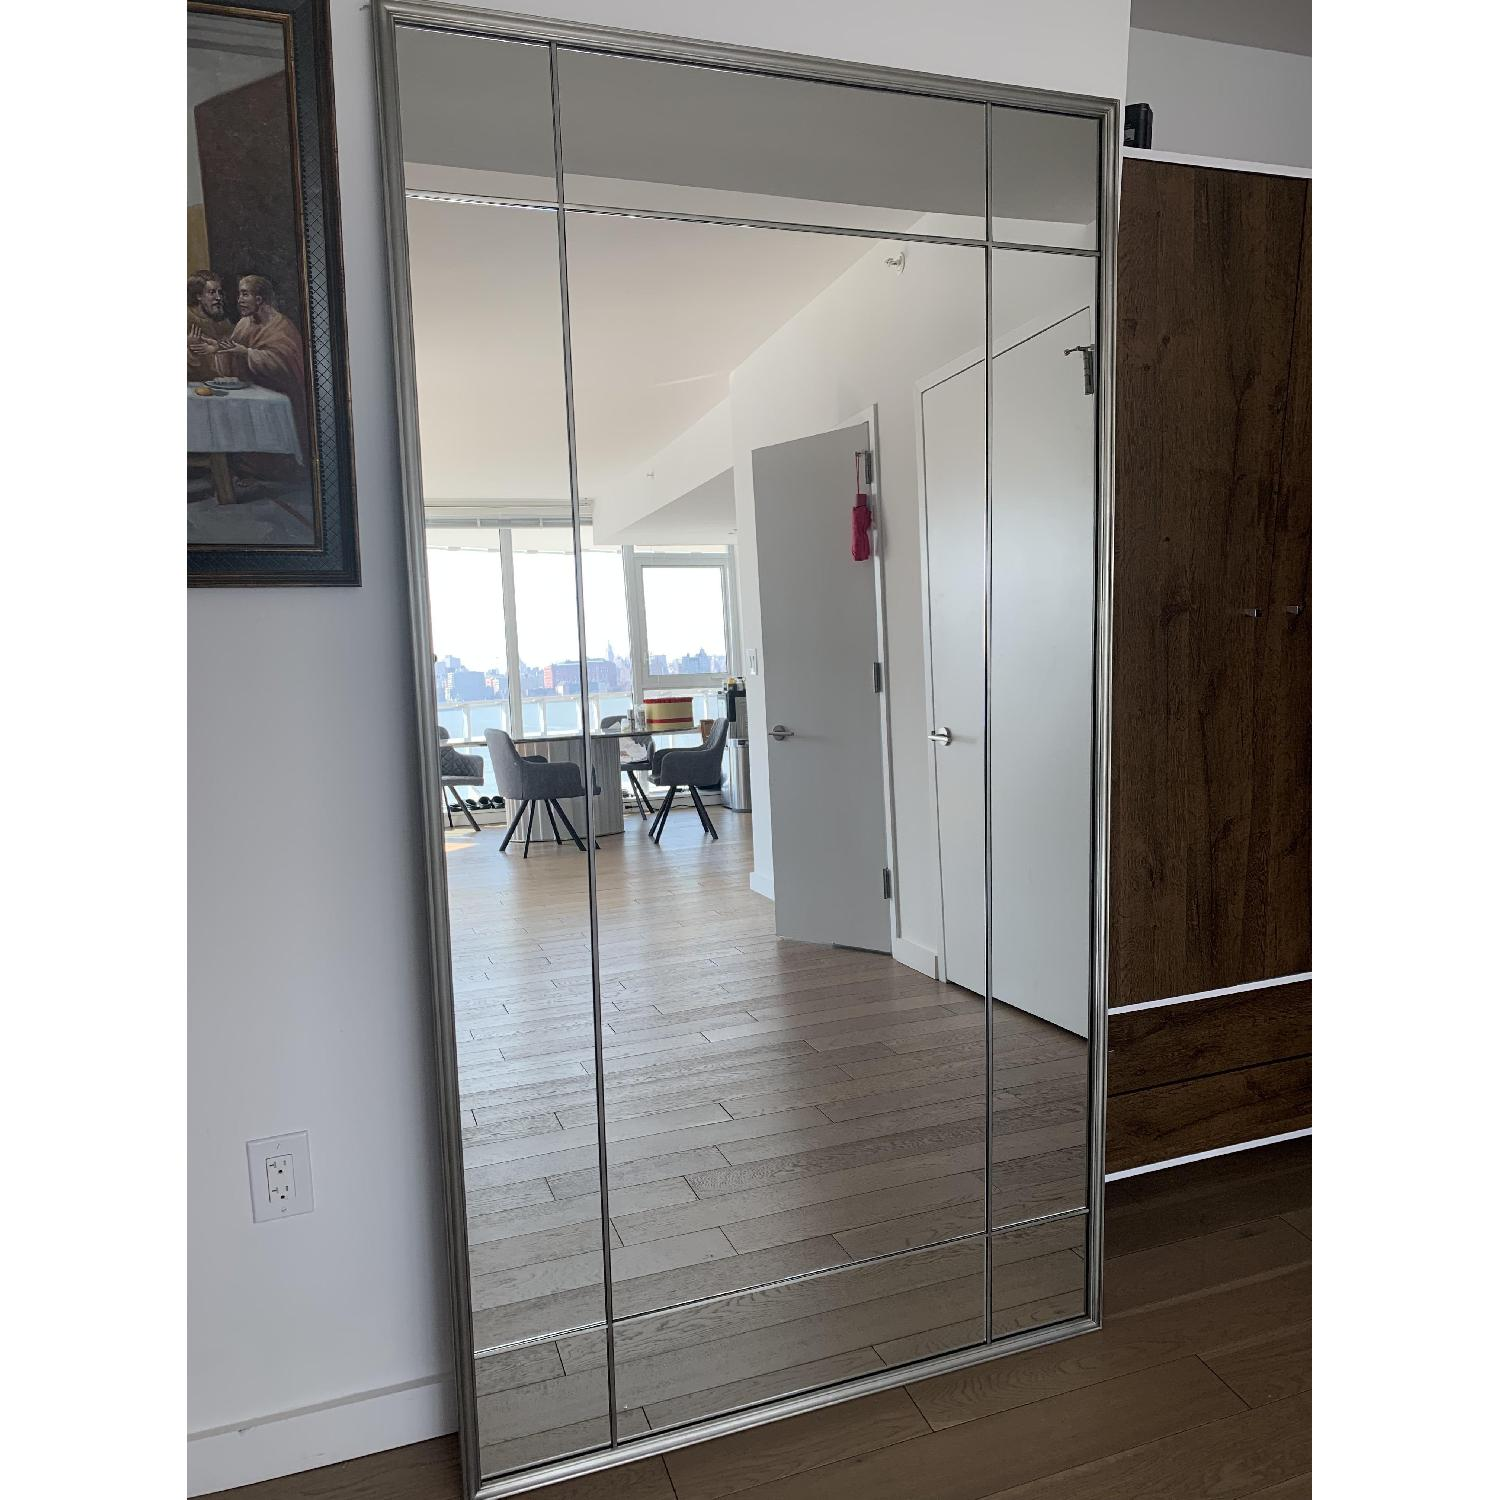 Restoration Hardware Full Length Mirror-0